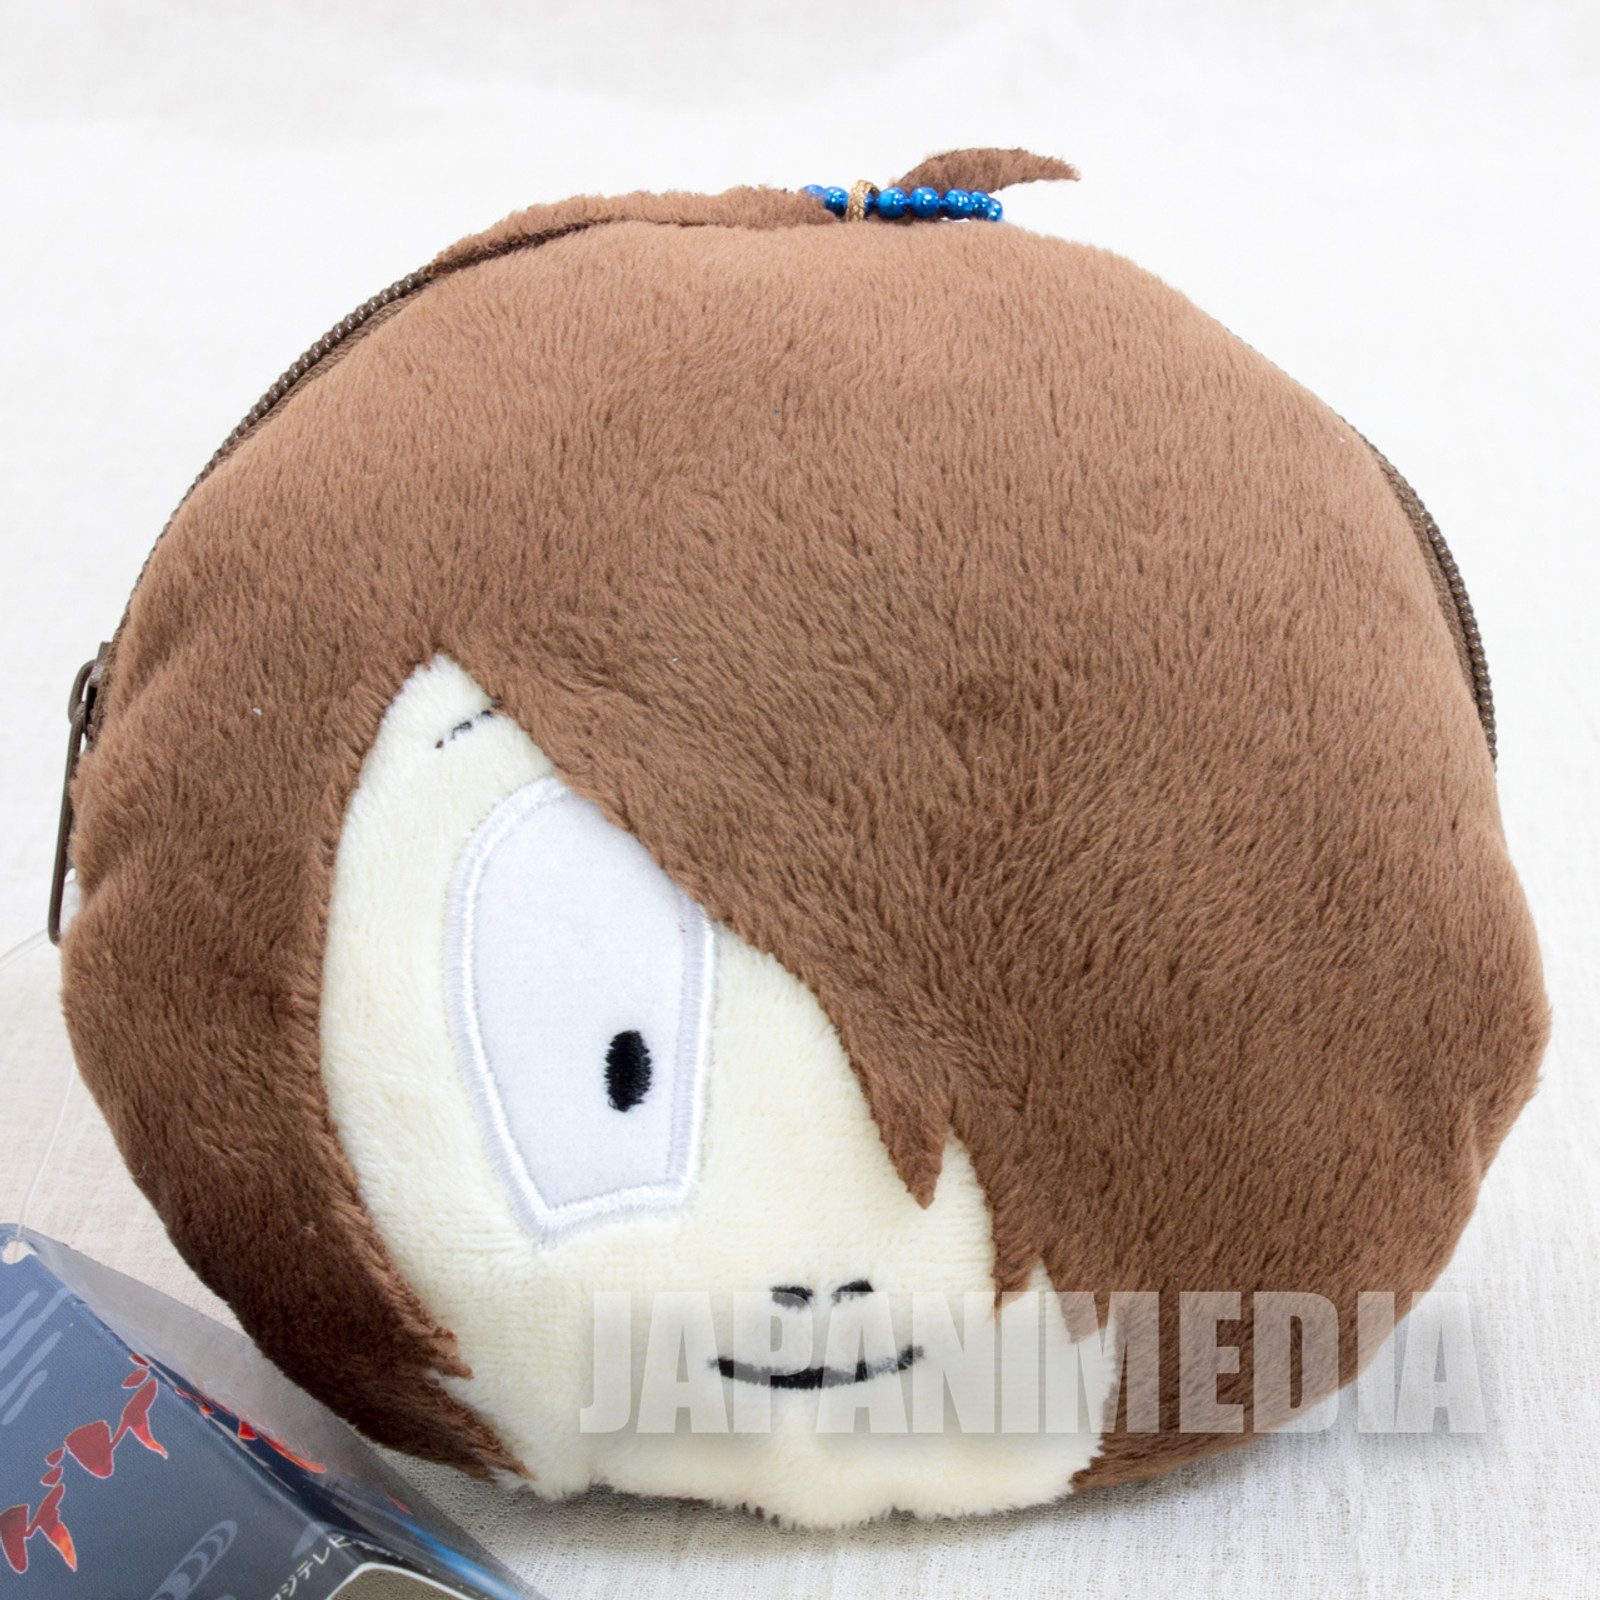 Gegege no Kitaro Face Plush Doll Type Coin Purse Zipper JAPAN ANIME